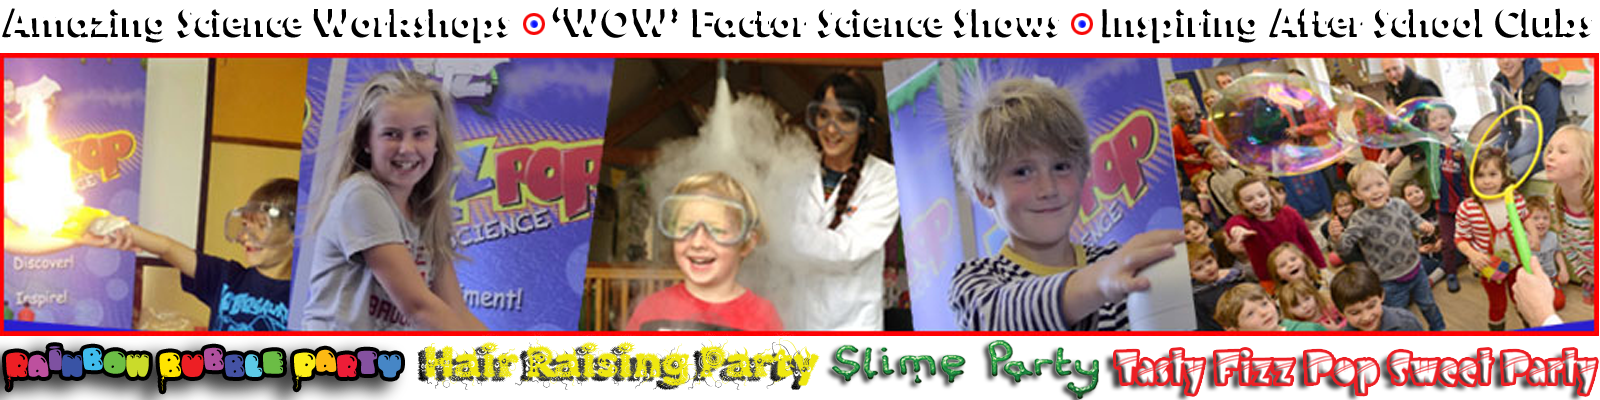 science party fun